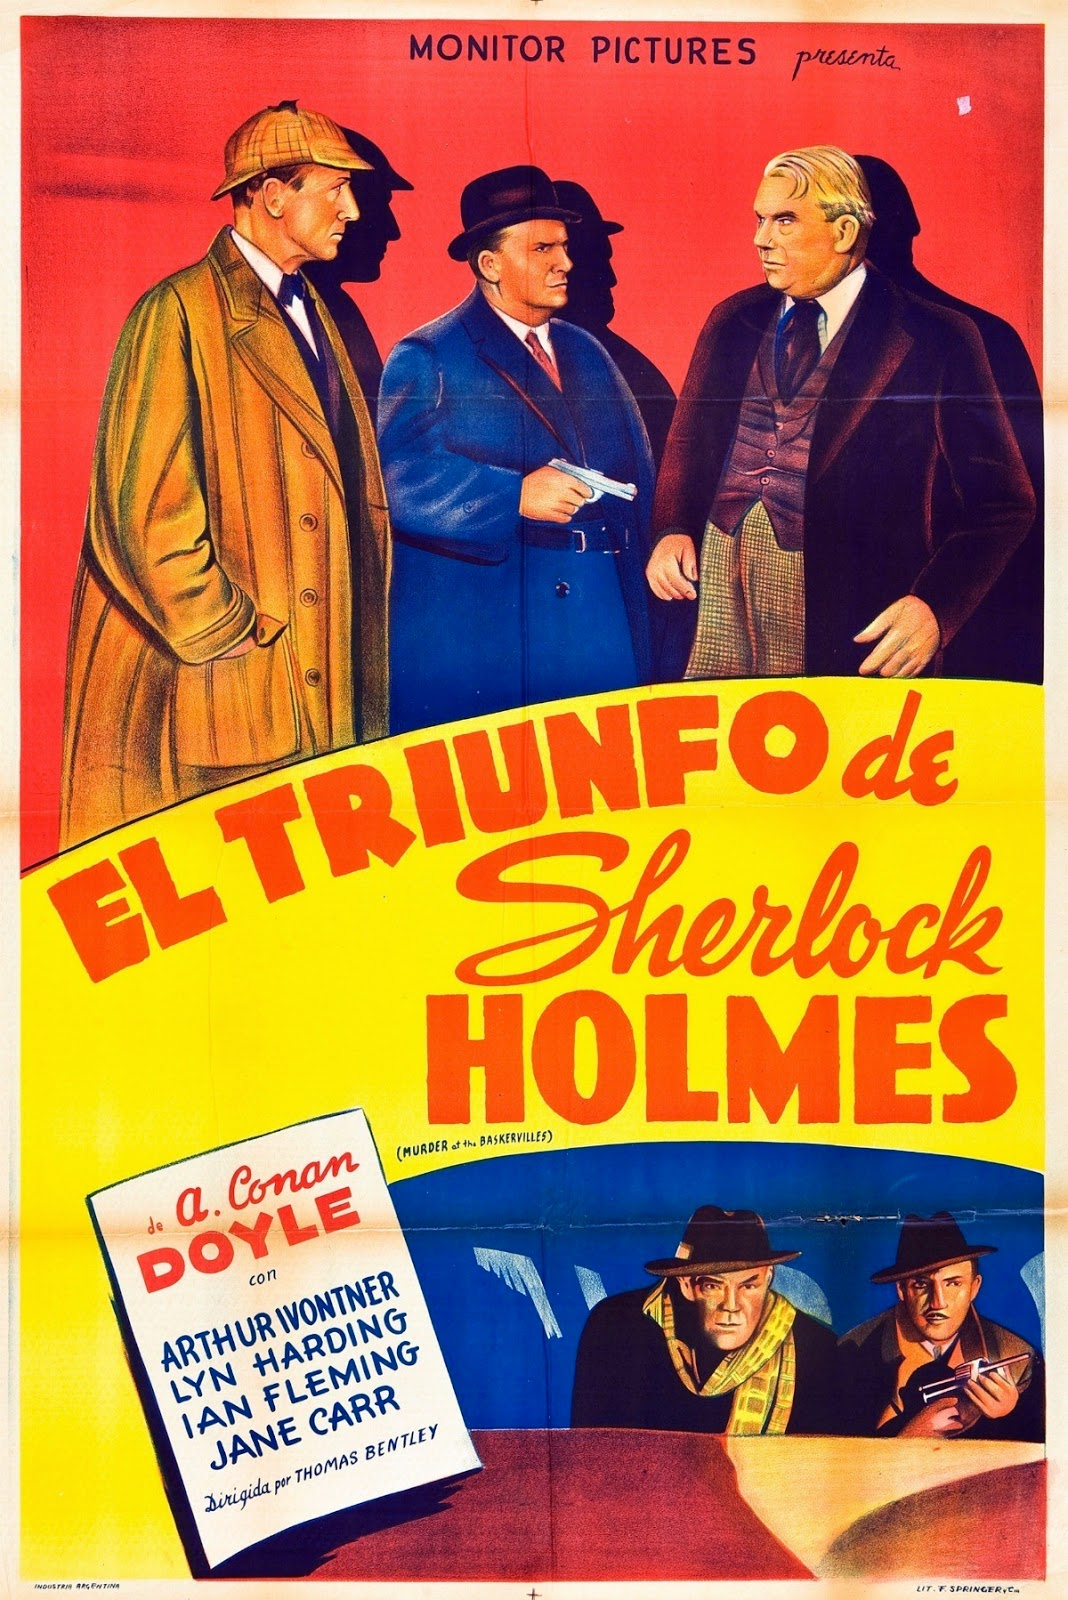 Spanish Film Poster For The Triumph of Sherlock Holmes 1935